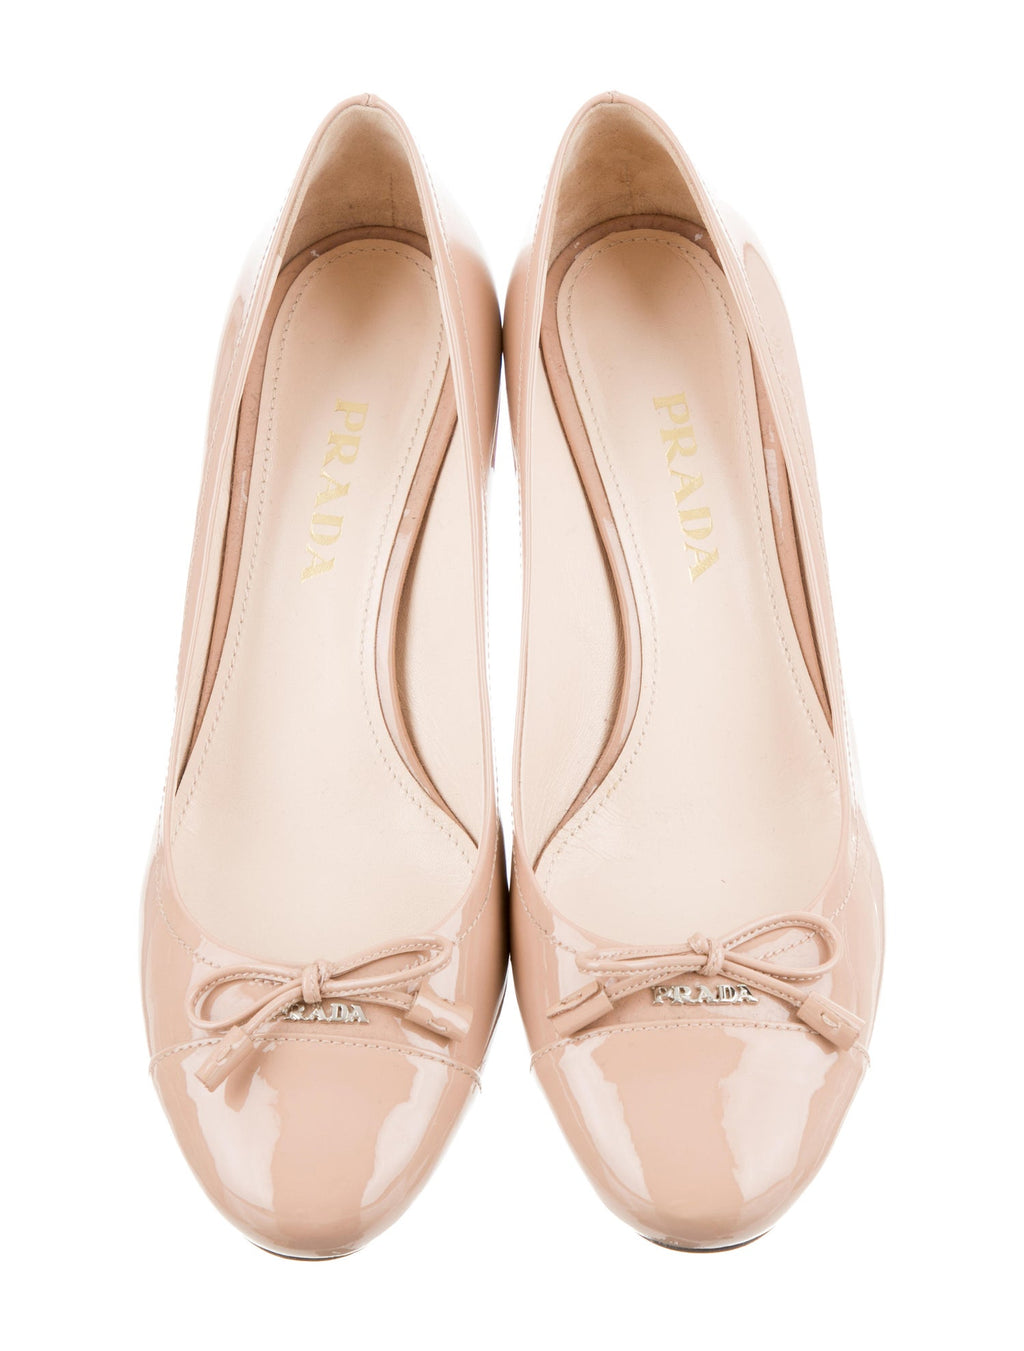 Prada Patent Leather Round-Toe Pumps